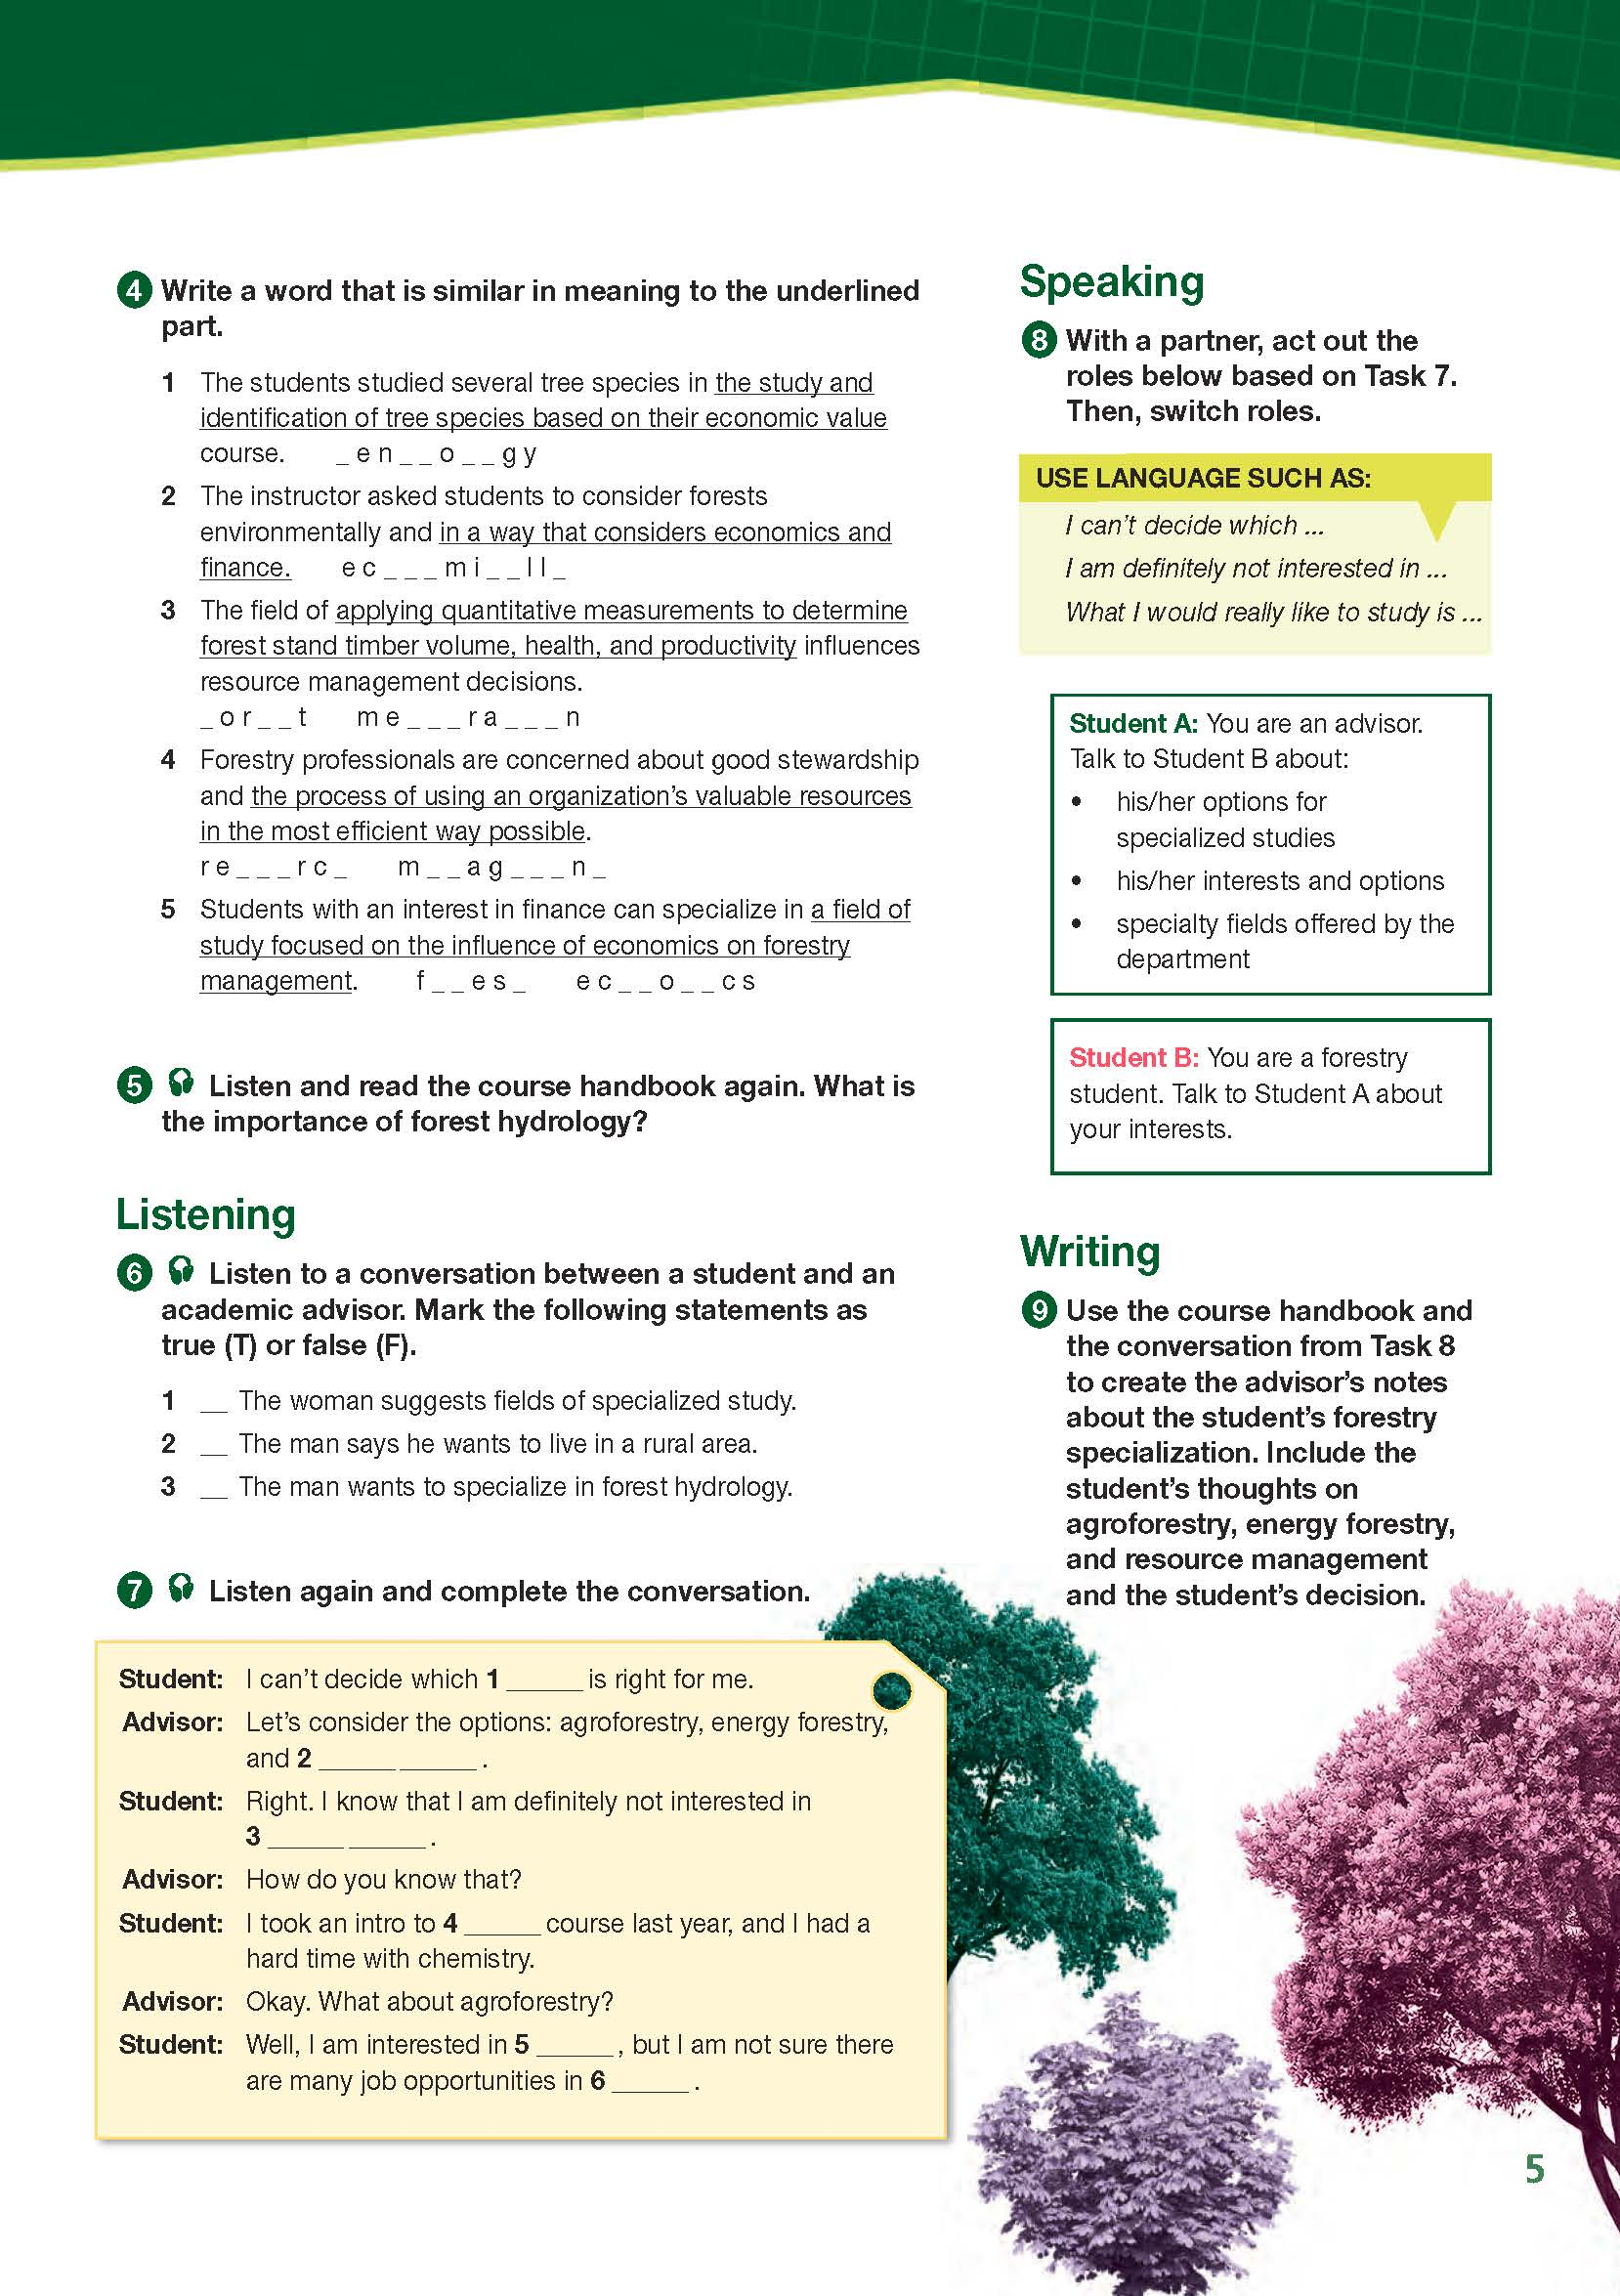 ESP English for Specific Purposes - Career Paths: Natural Resources I Forestry - Sample Page 2